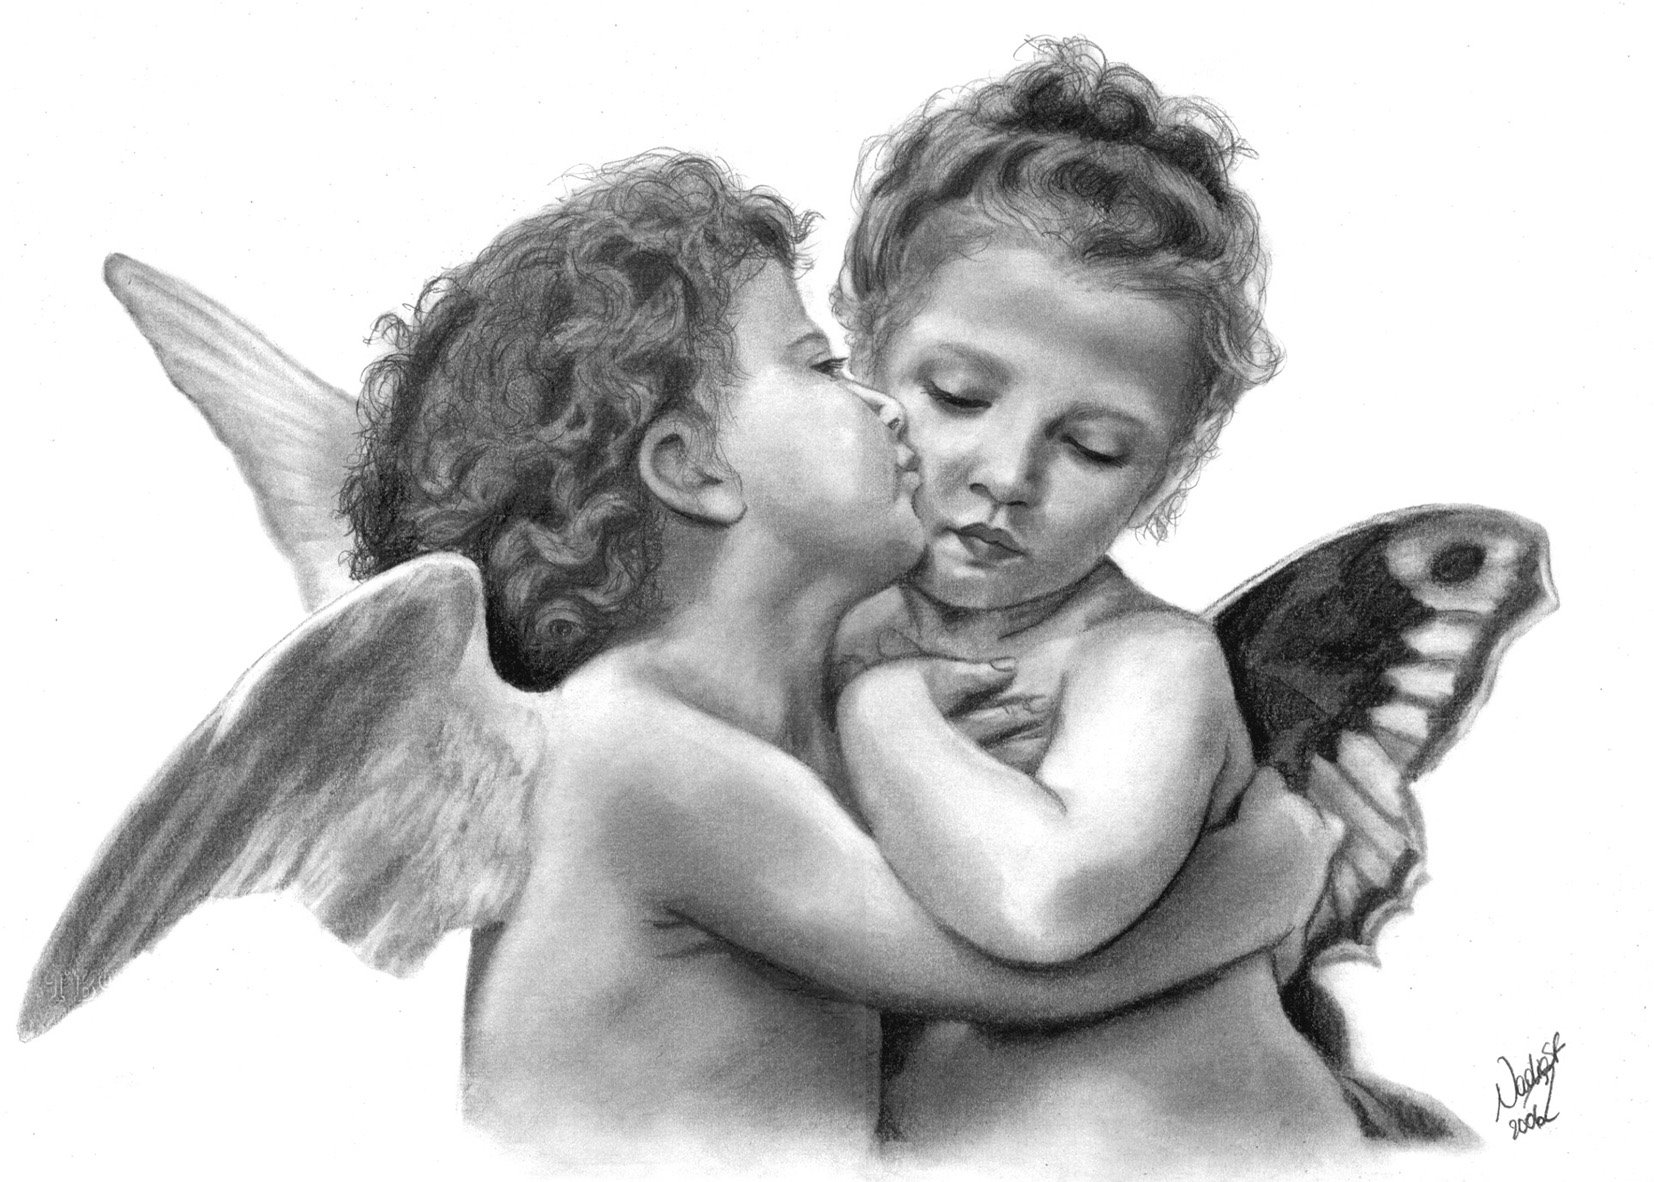 Angels Fantasy angel baby child children mood love wallpaper 1654x1182 103644 WallpaperUP